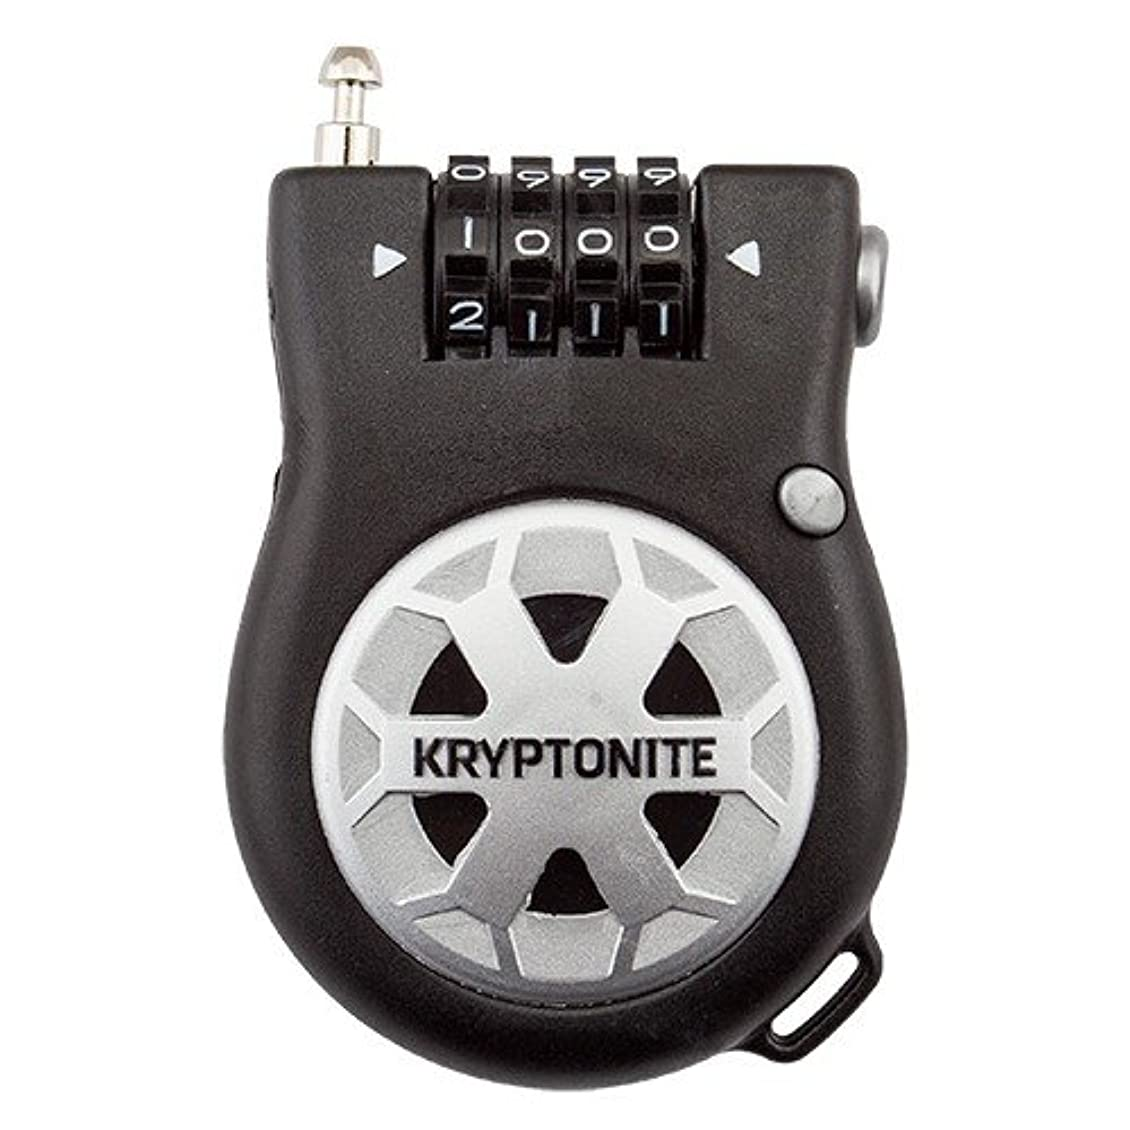 取り壊すかかわらずオーバーコートKryptonite Kryptoflex Retractor R2 Pocket Combo Cable bicycle lock by Kryptonite